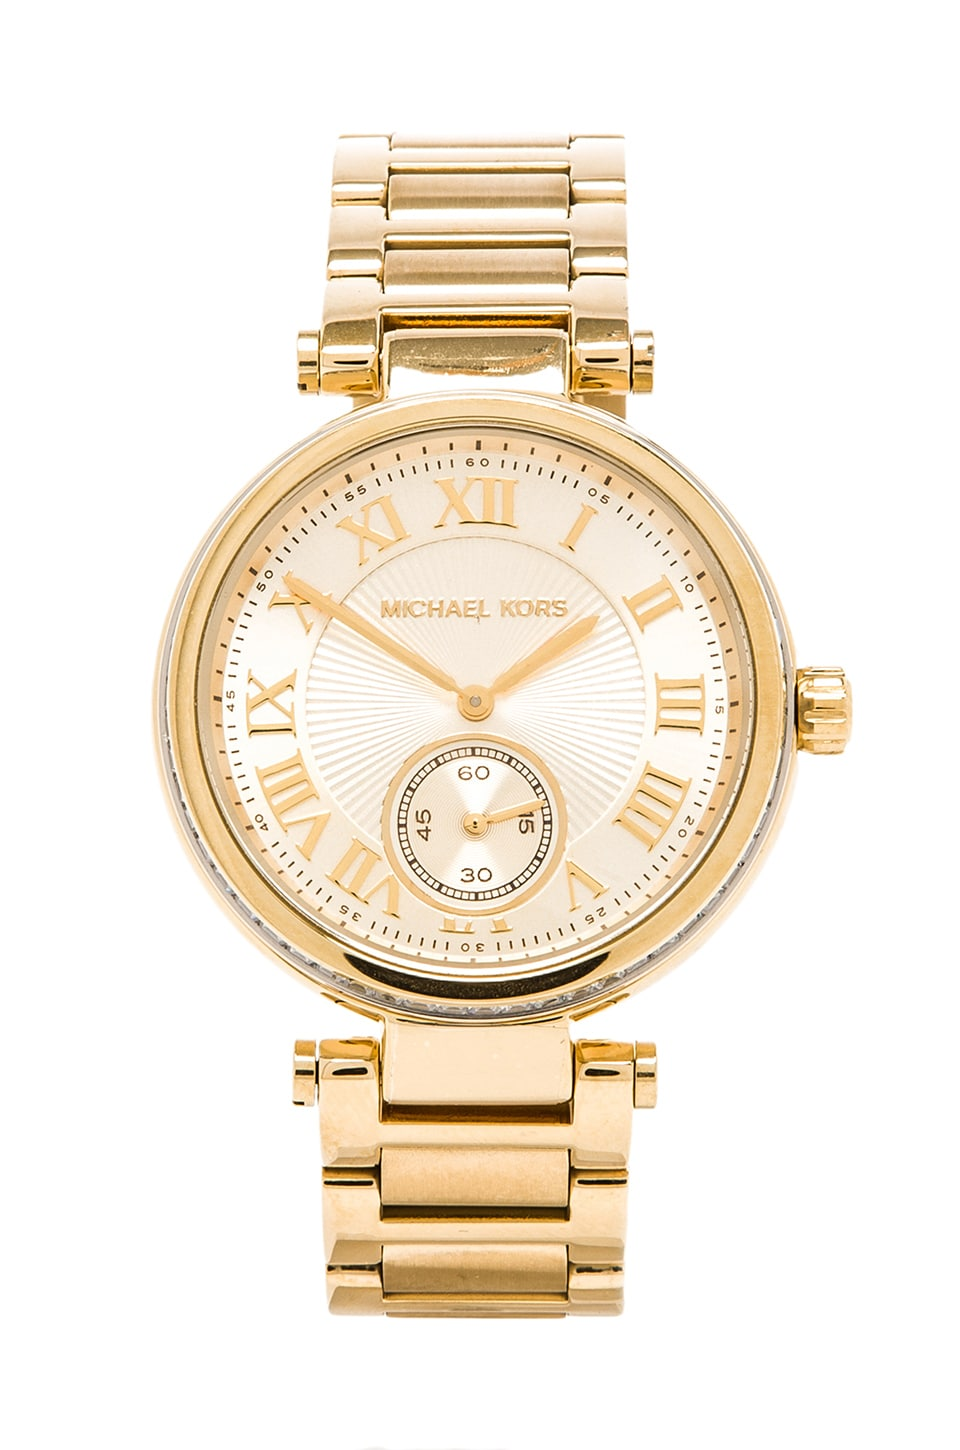 Michael Kors Skylar in Gold